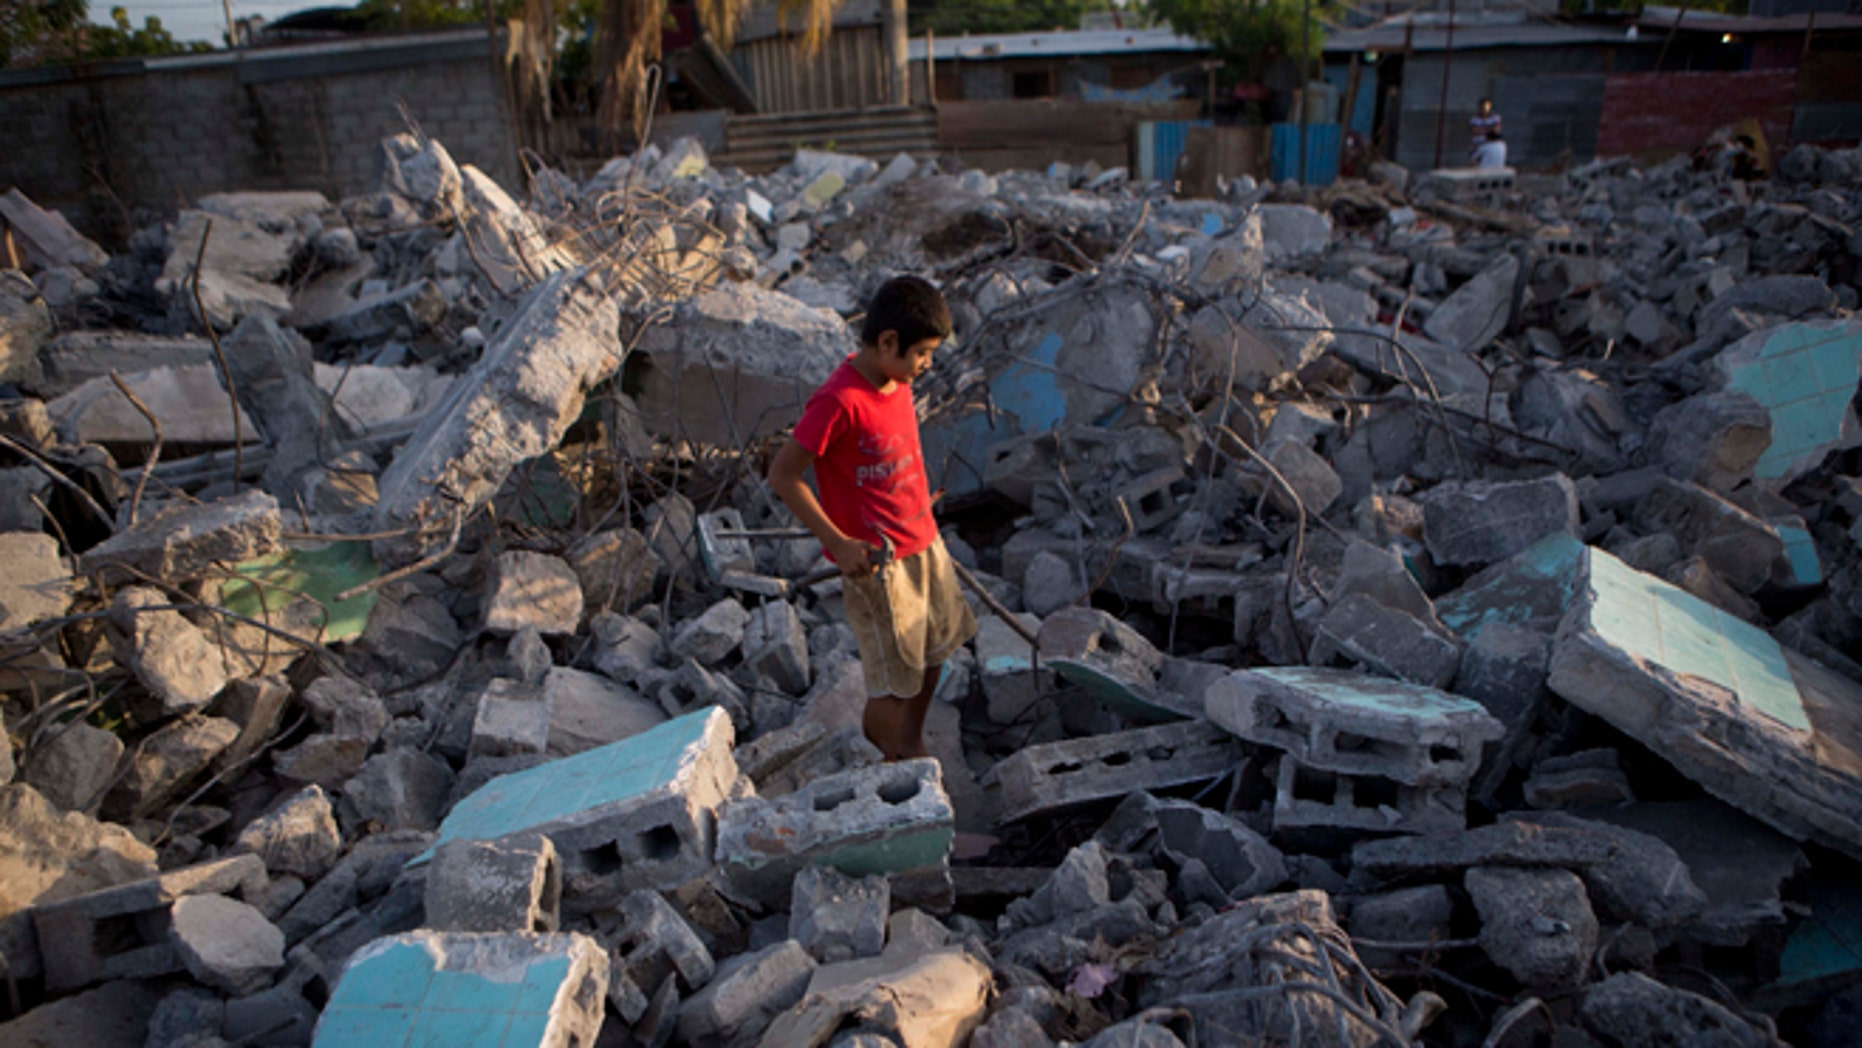 A boy searches for metal to sell, in the rubble of a building that was damaged in a 1972 earthquake and demolished after several recent earthquakes in Managua, Nicaragua, Monday, April 14, 2014. People who had been living in earthquake damaged buildings were ordered to evacuate after several quakes have affected Nicaragua since Thursday. (AP Photo/Esteban Felix)